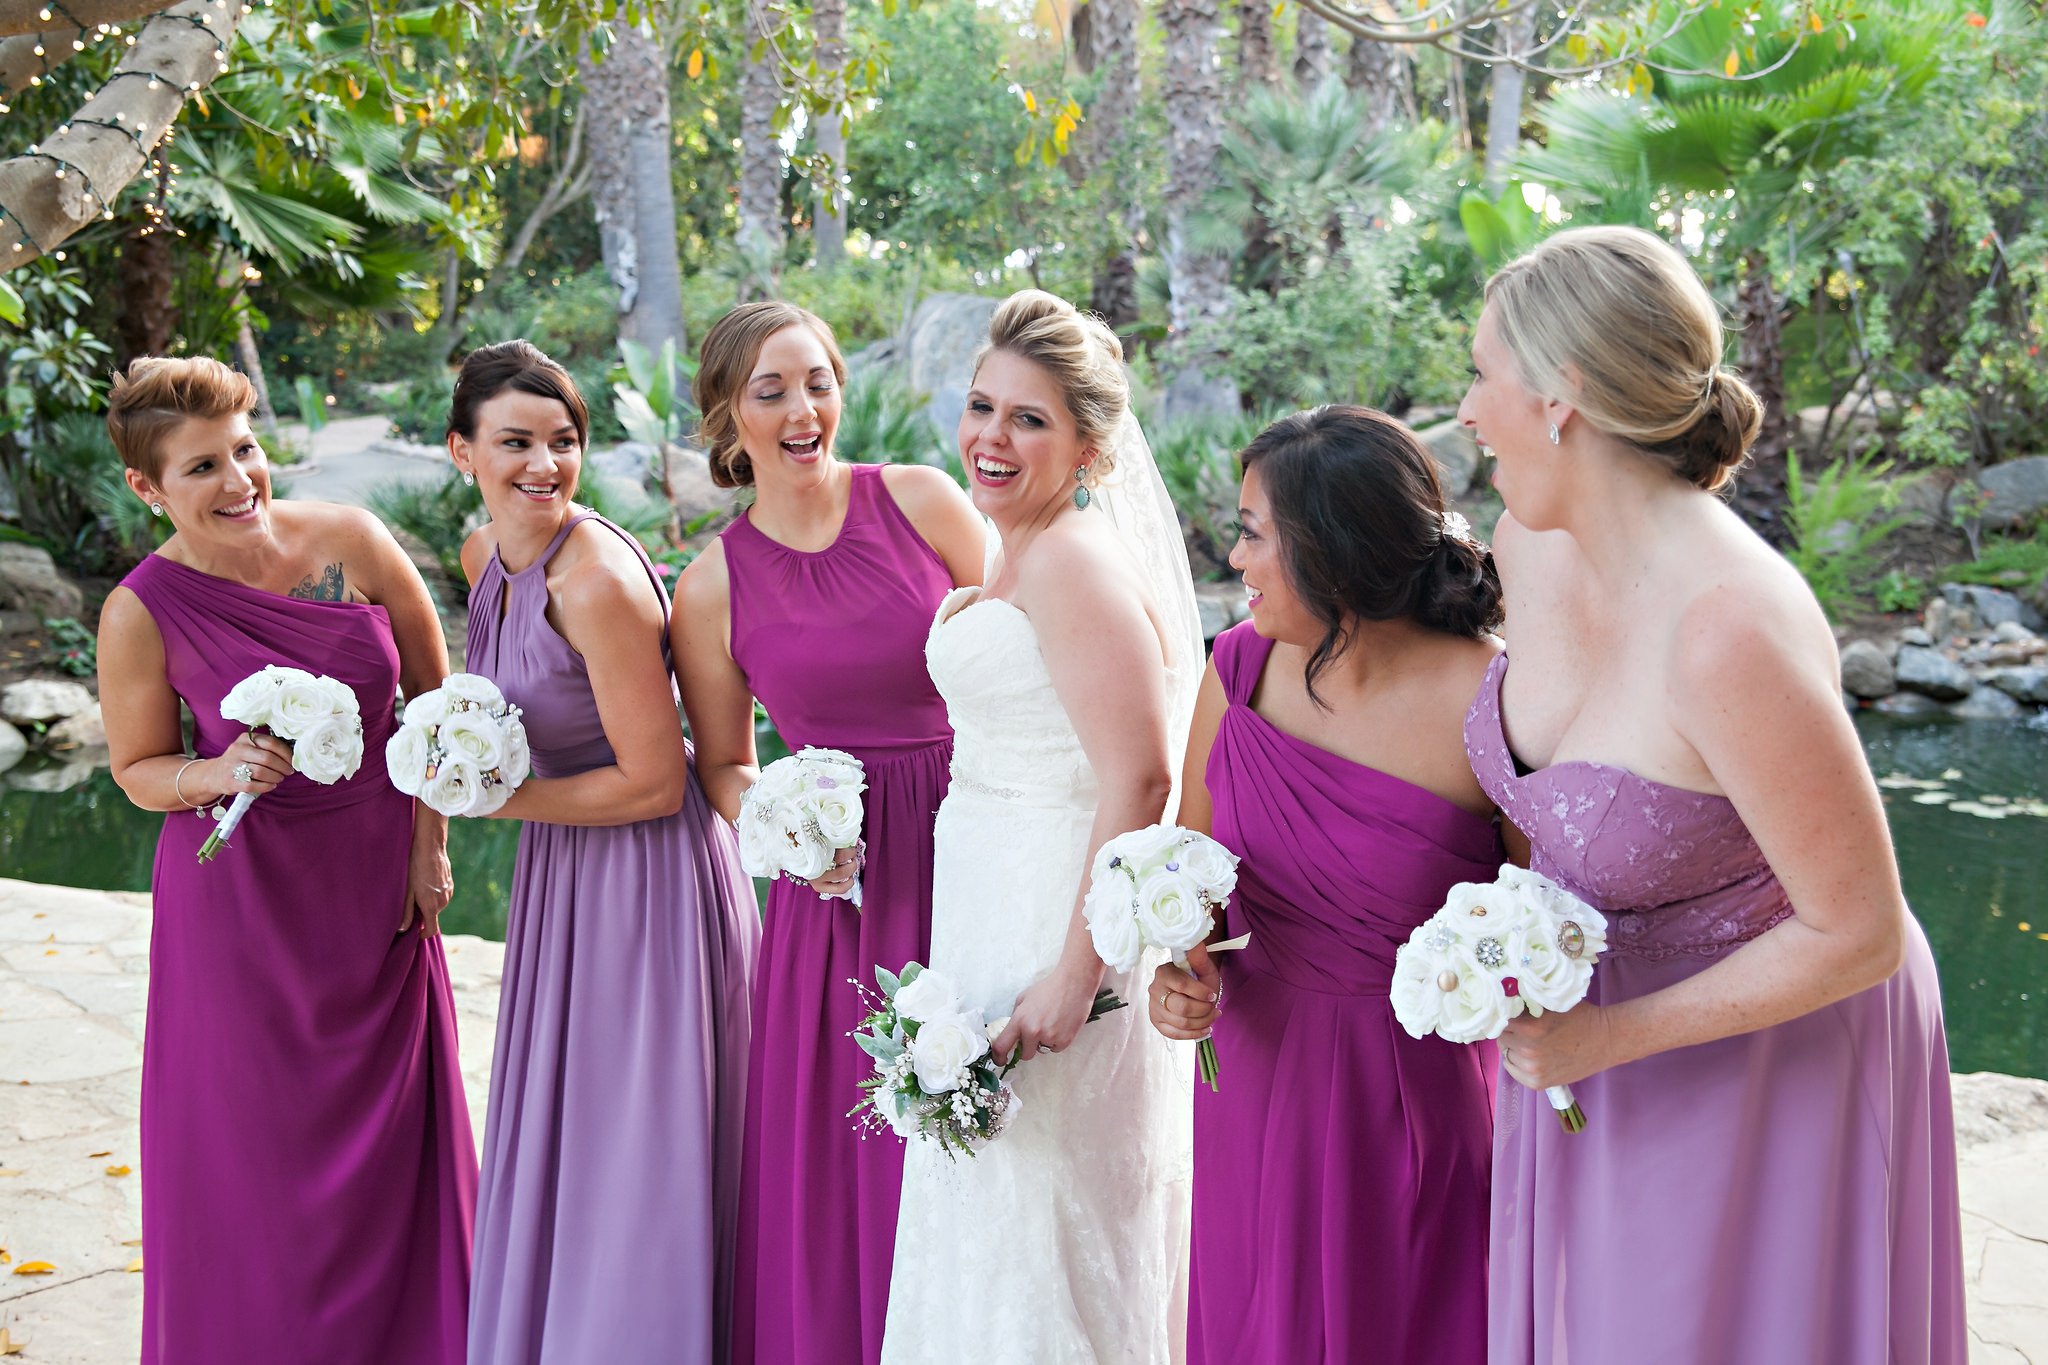 Bridal Party Wedding Bridesmaids Dresses